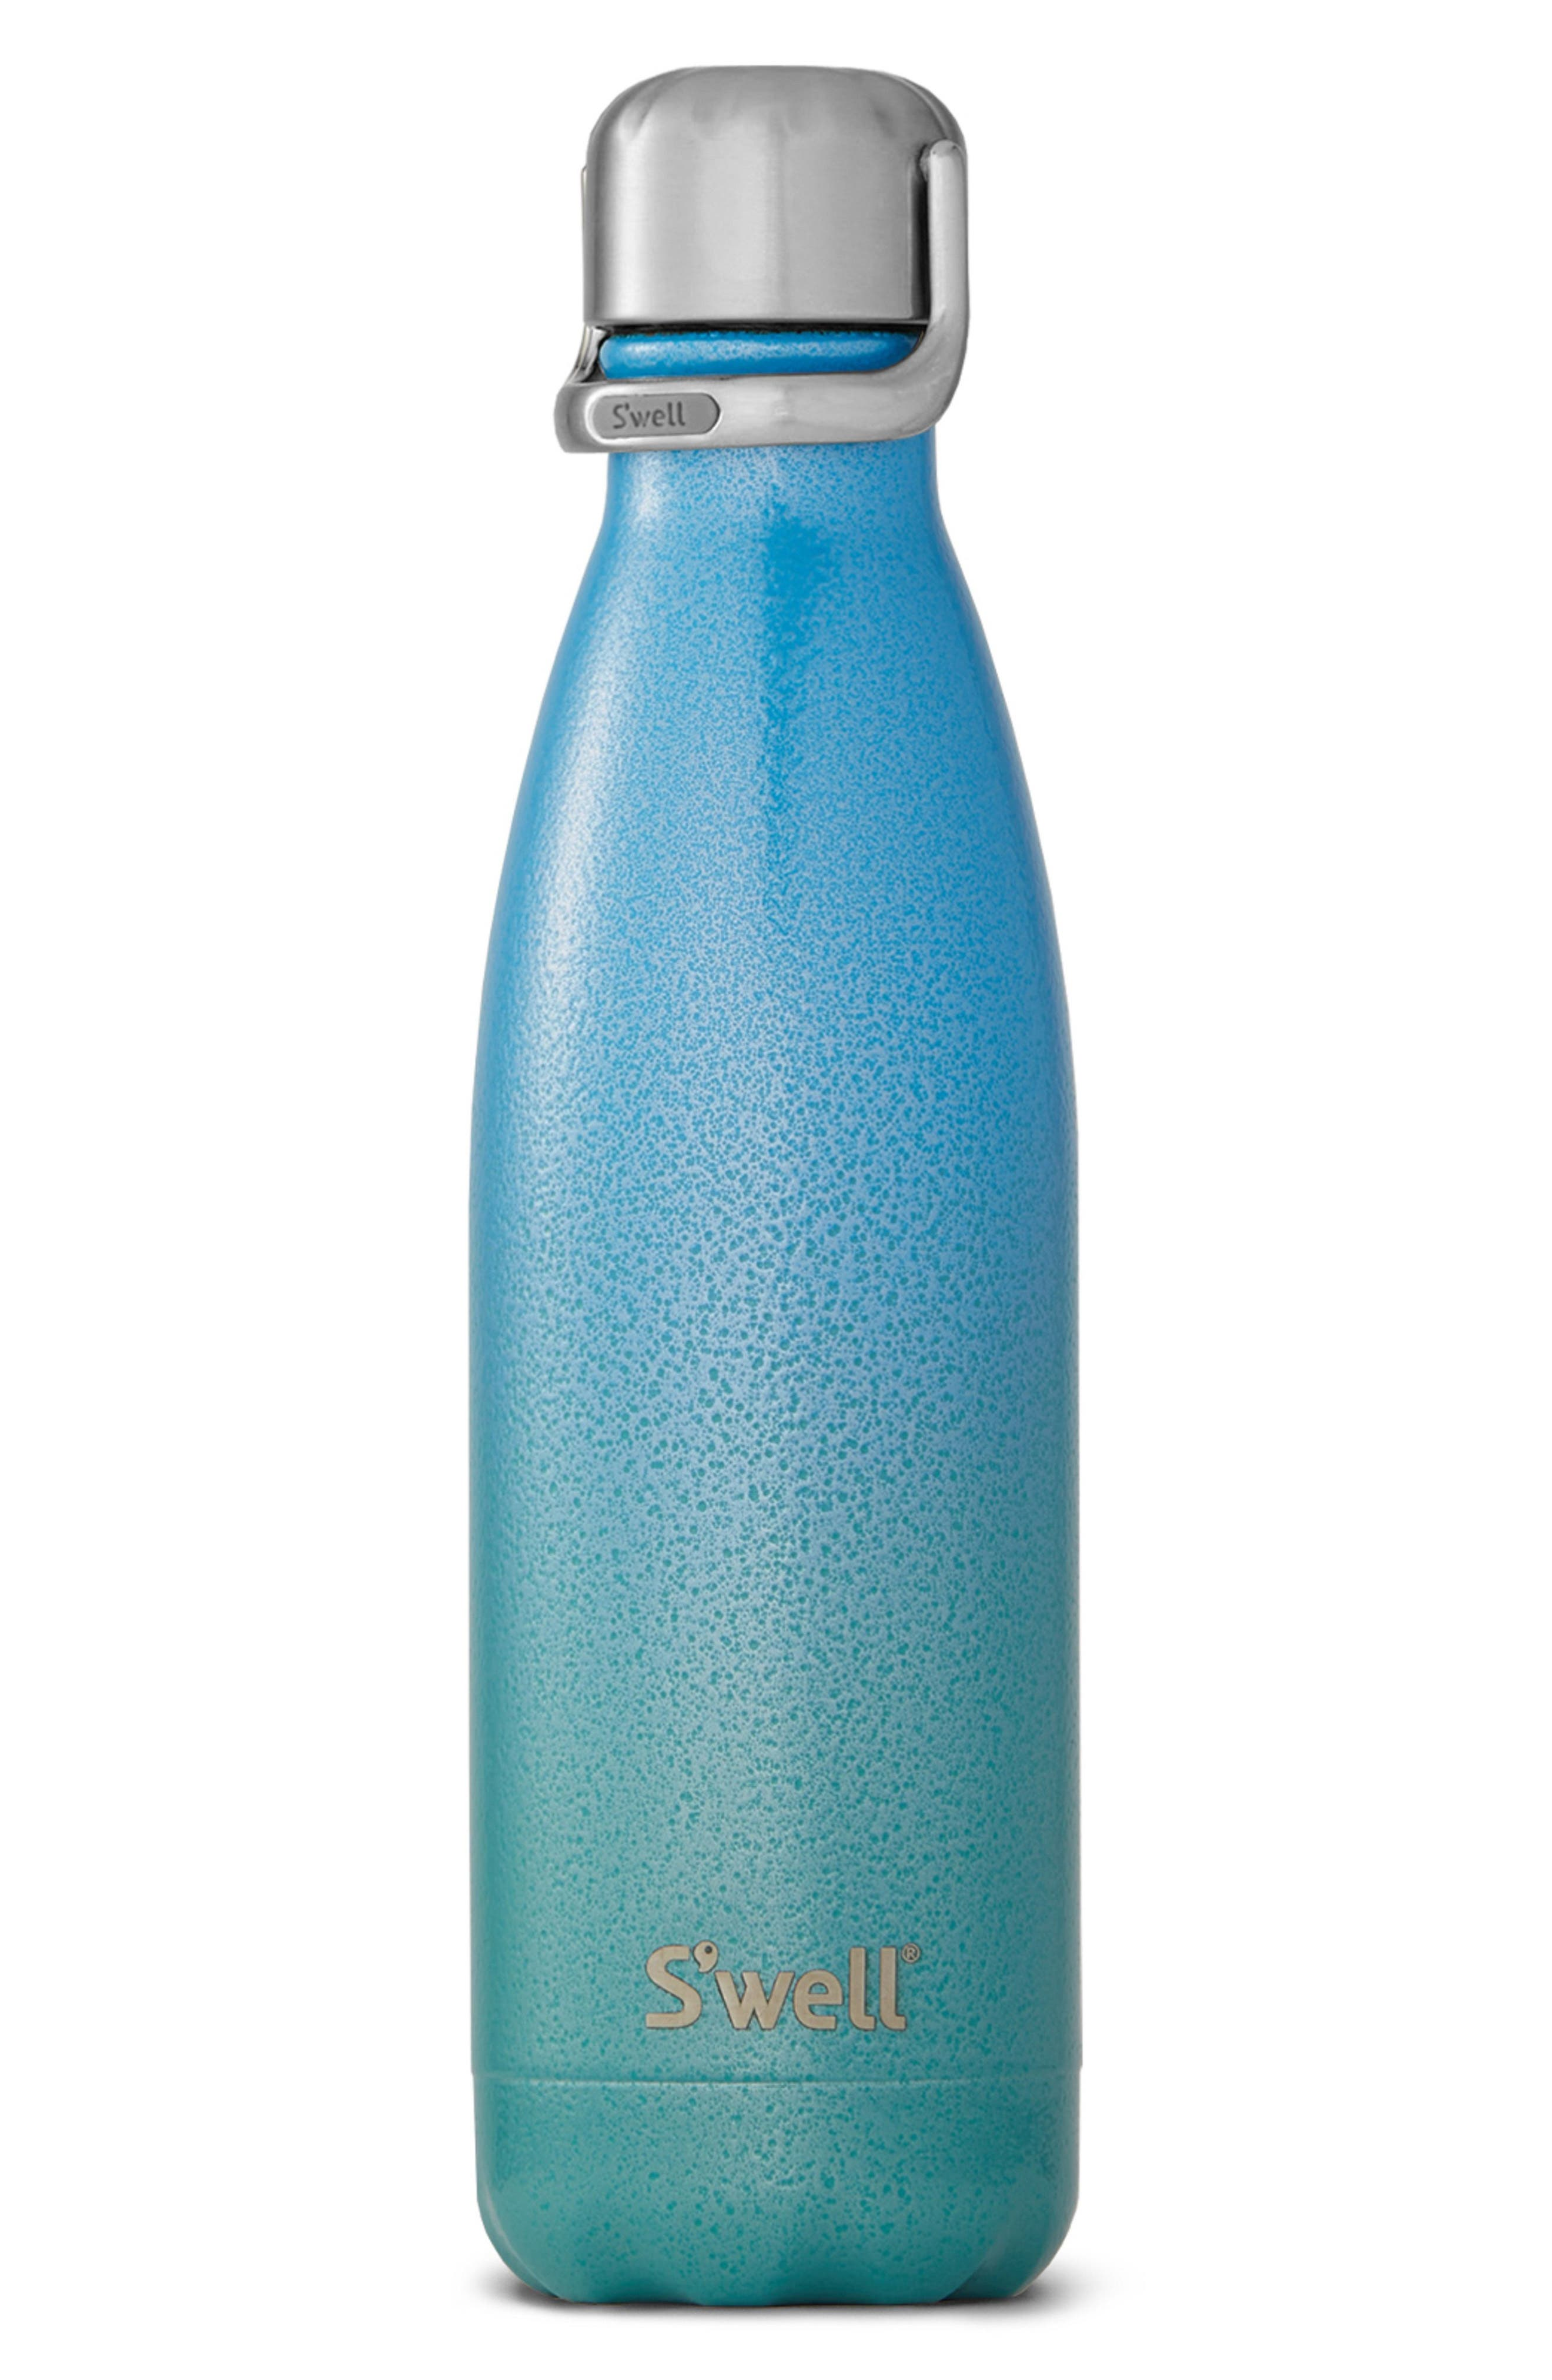 S'well Clio Stainless Steel Water Bottle with Sport Cap